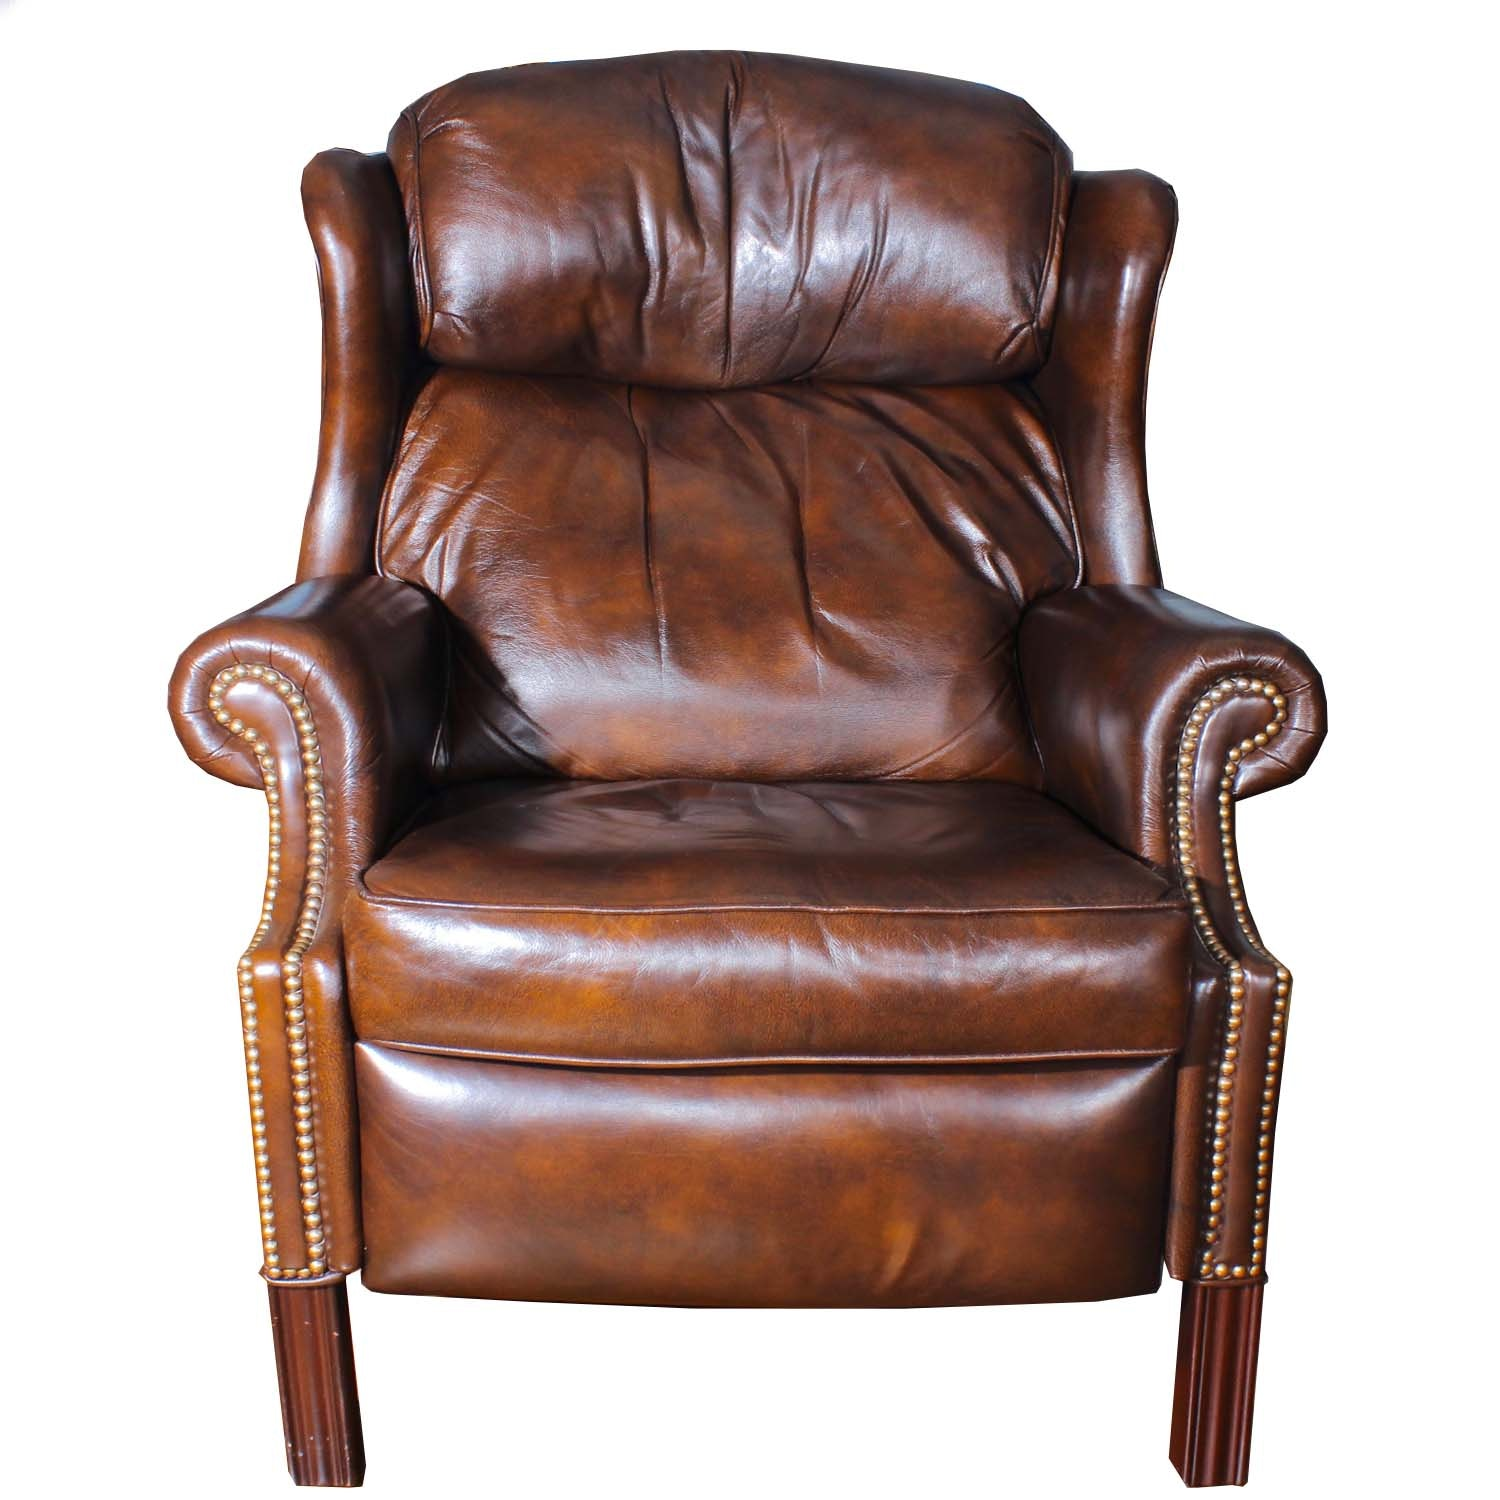 Bradington-Young Wing Back Leather Recliner with Nailhead Trim